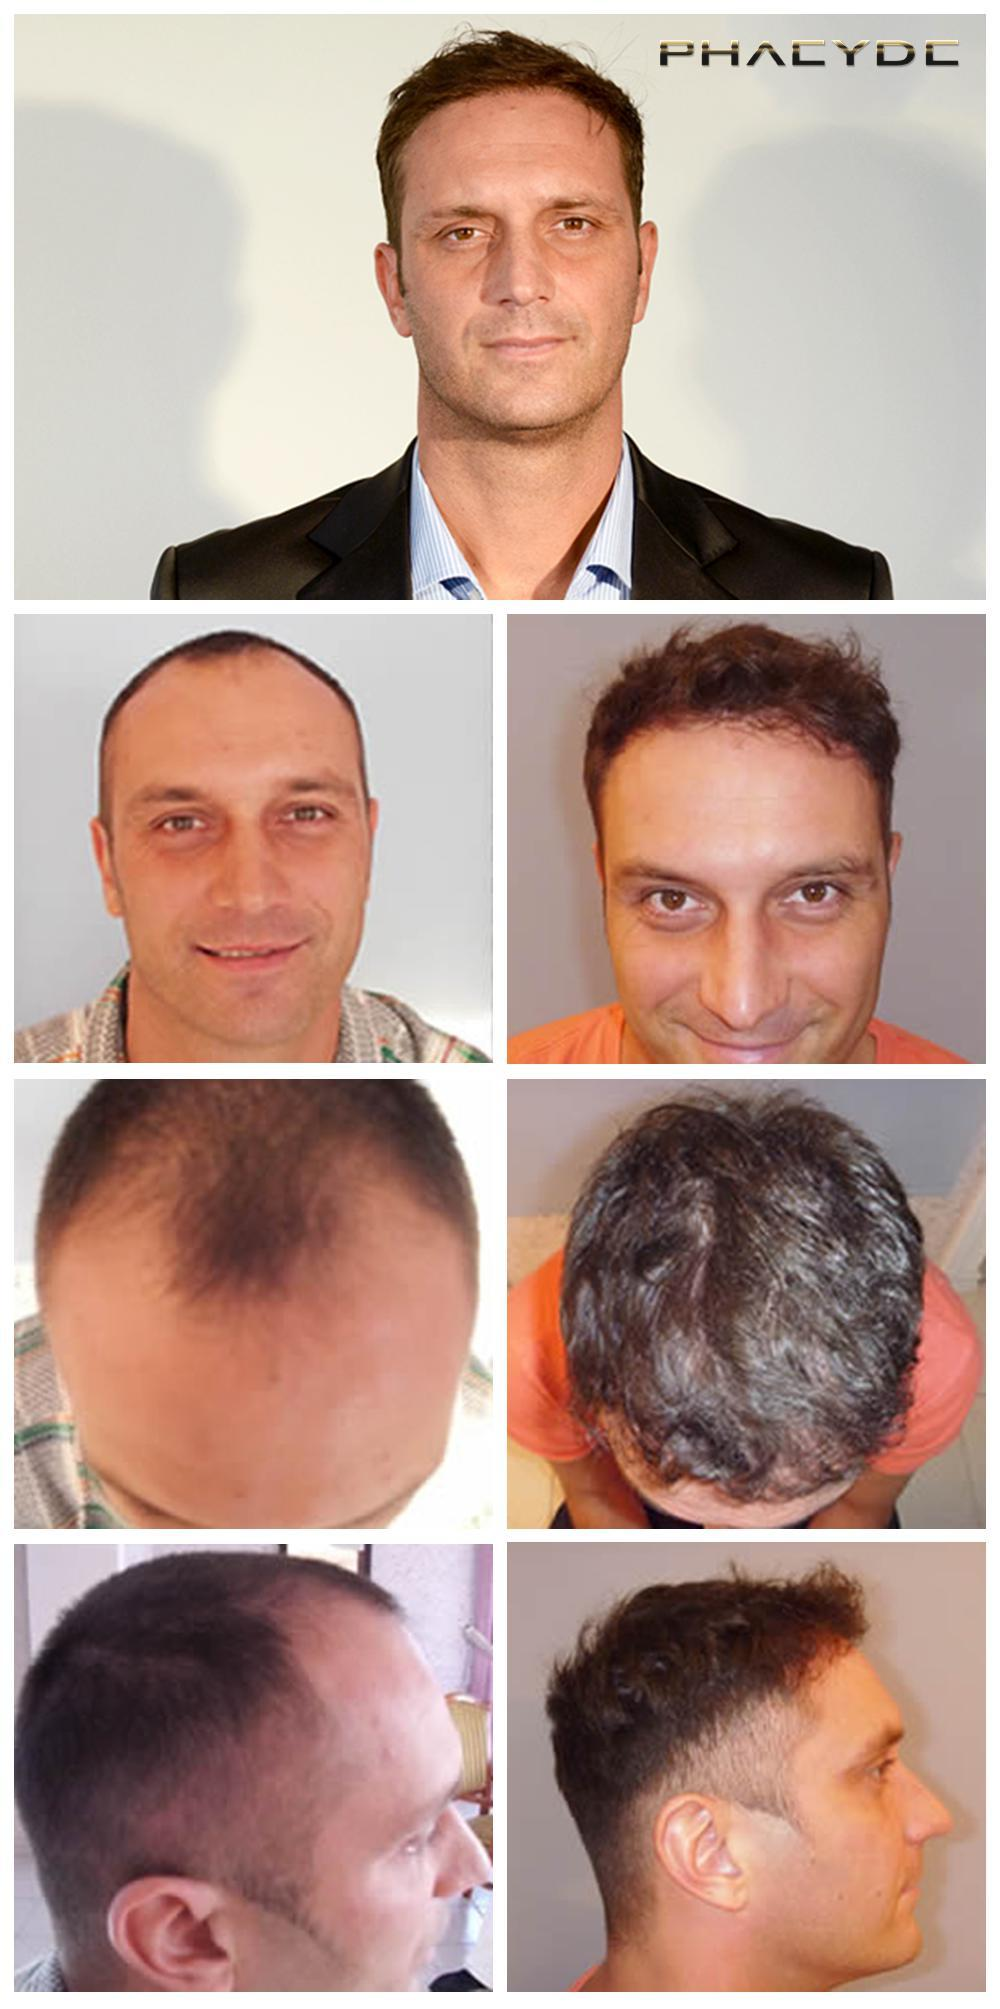 Hair transplant fue results before after photos istvan szebeni - PHAEYDE Clinic